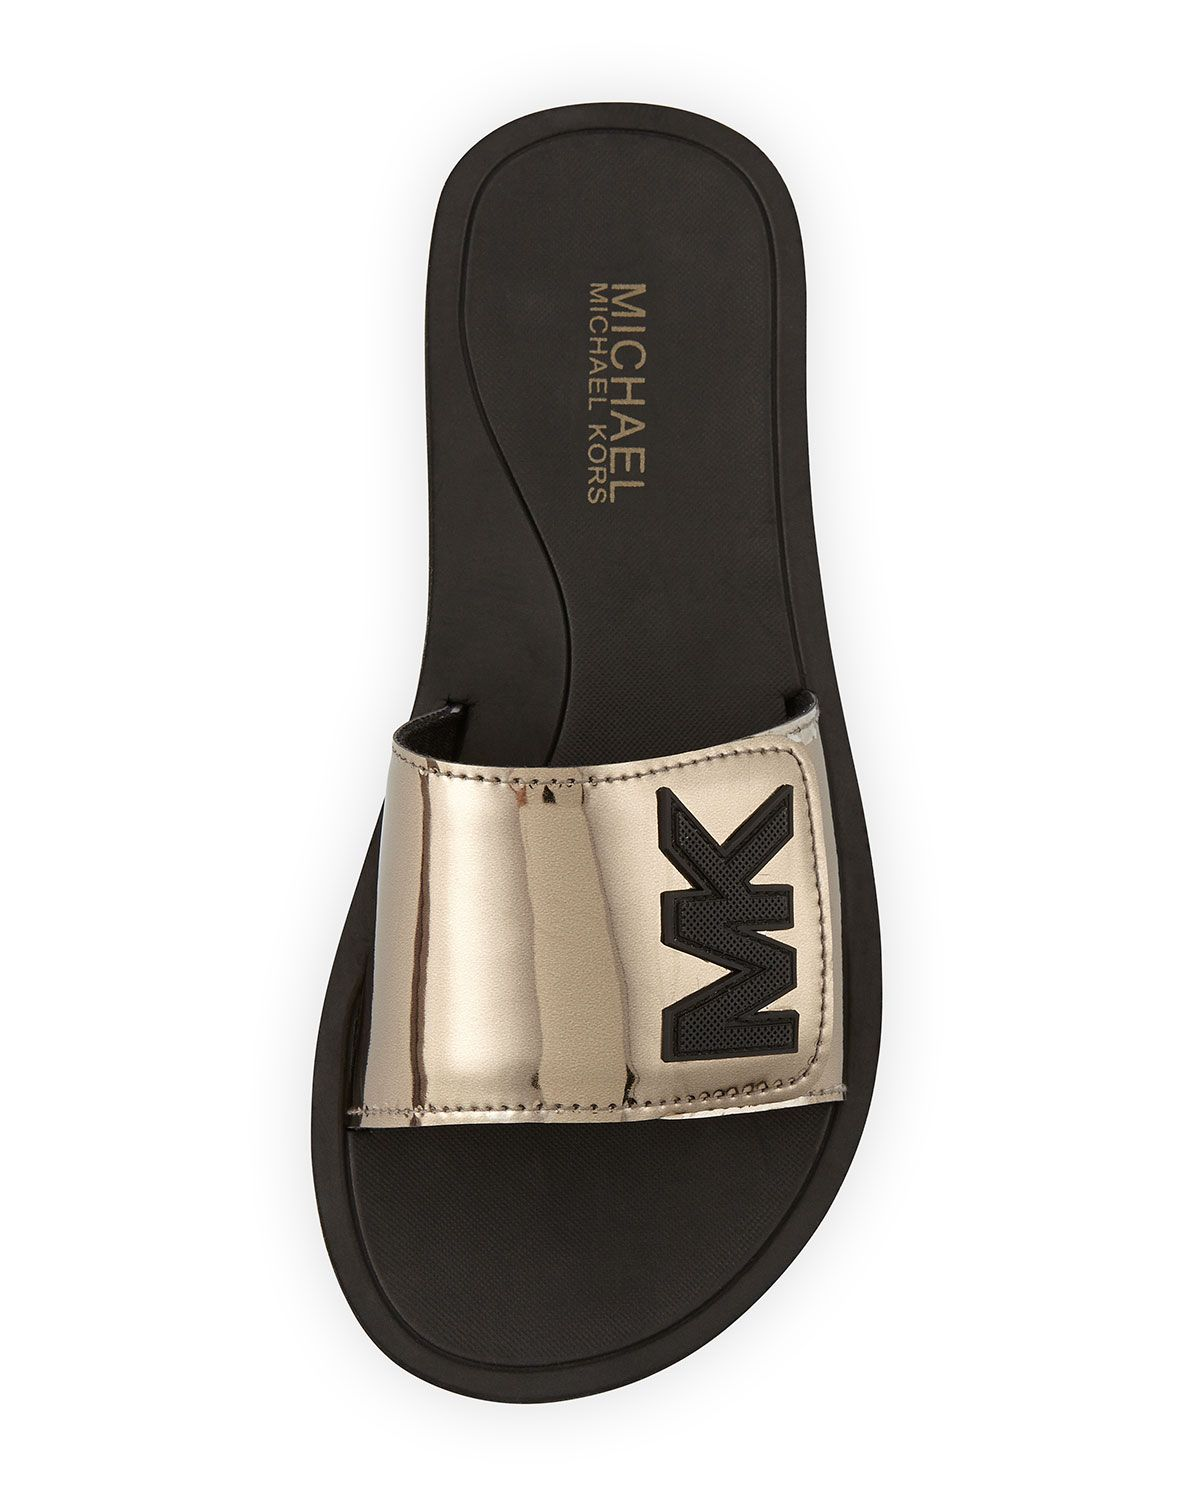 af99ca130396 These Michael Kors slides for women are perfect for slipping on after  working out. Not only do they look stylish